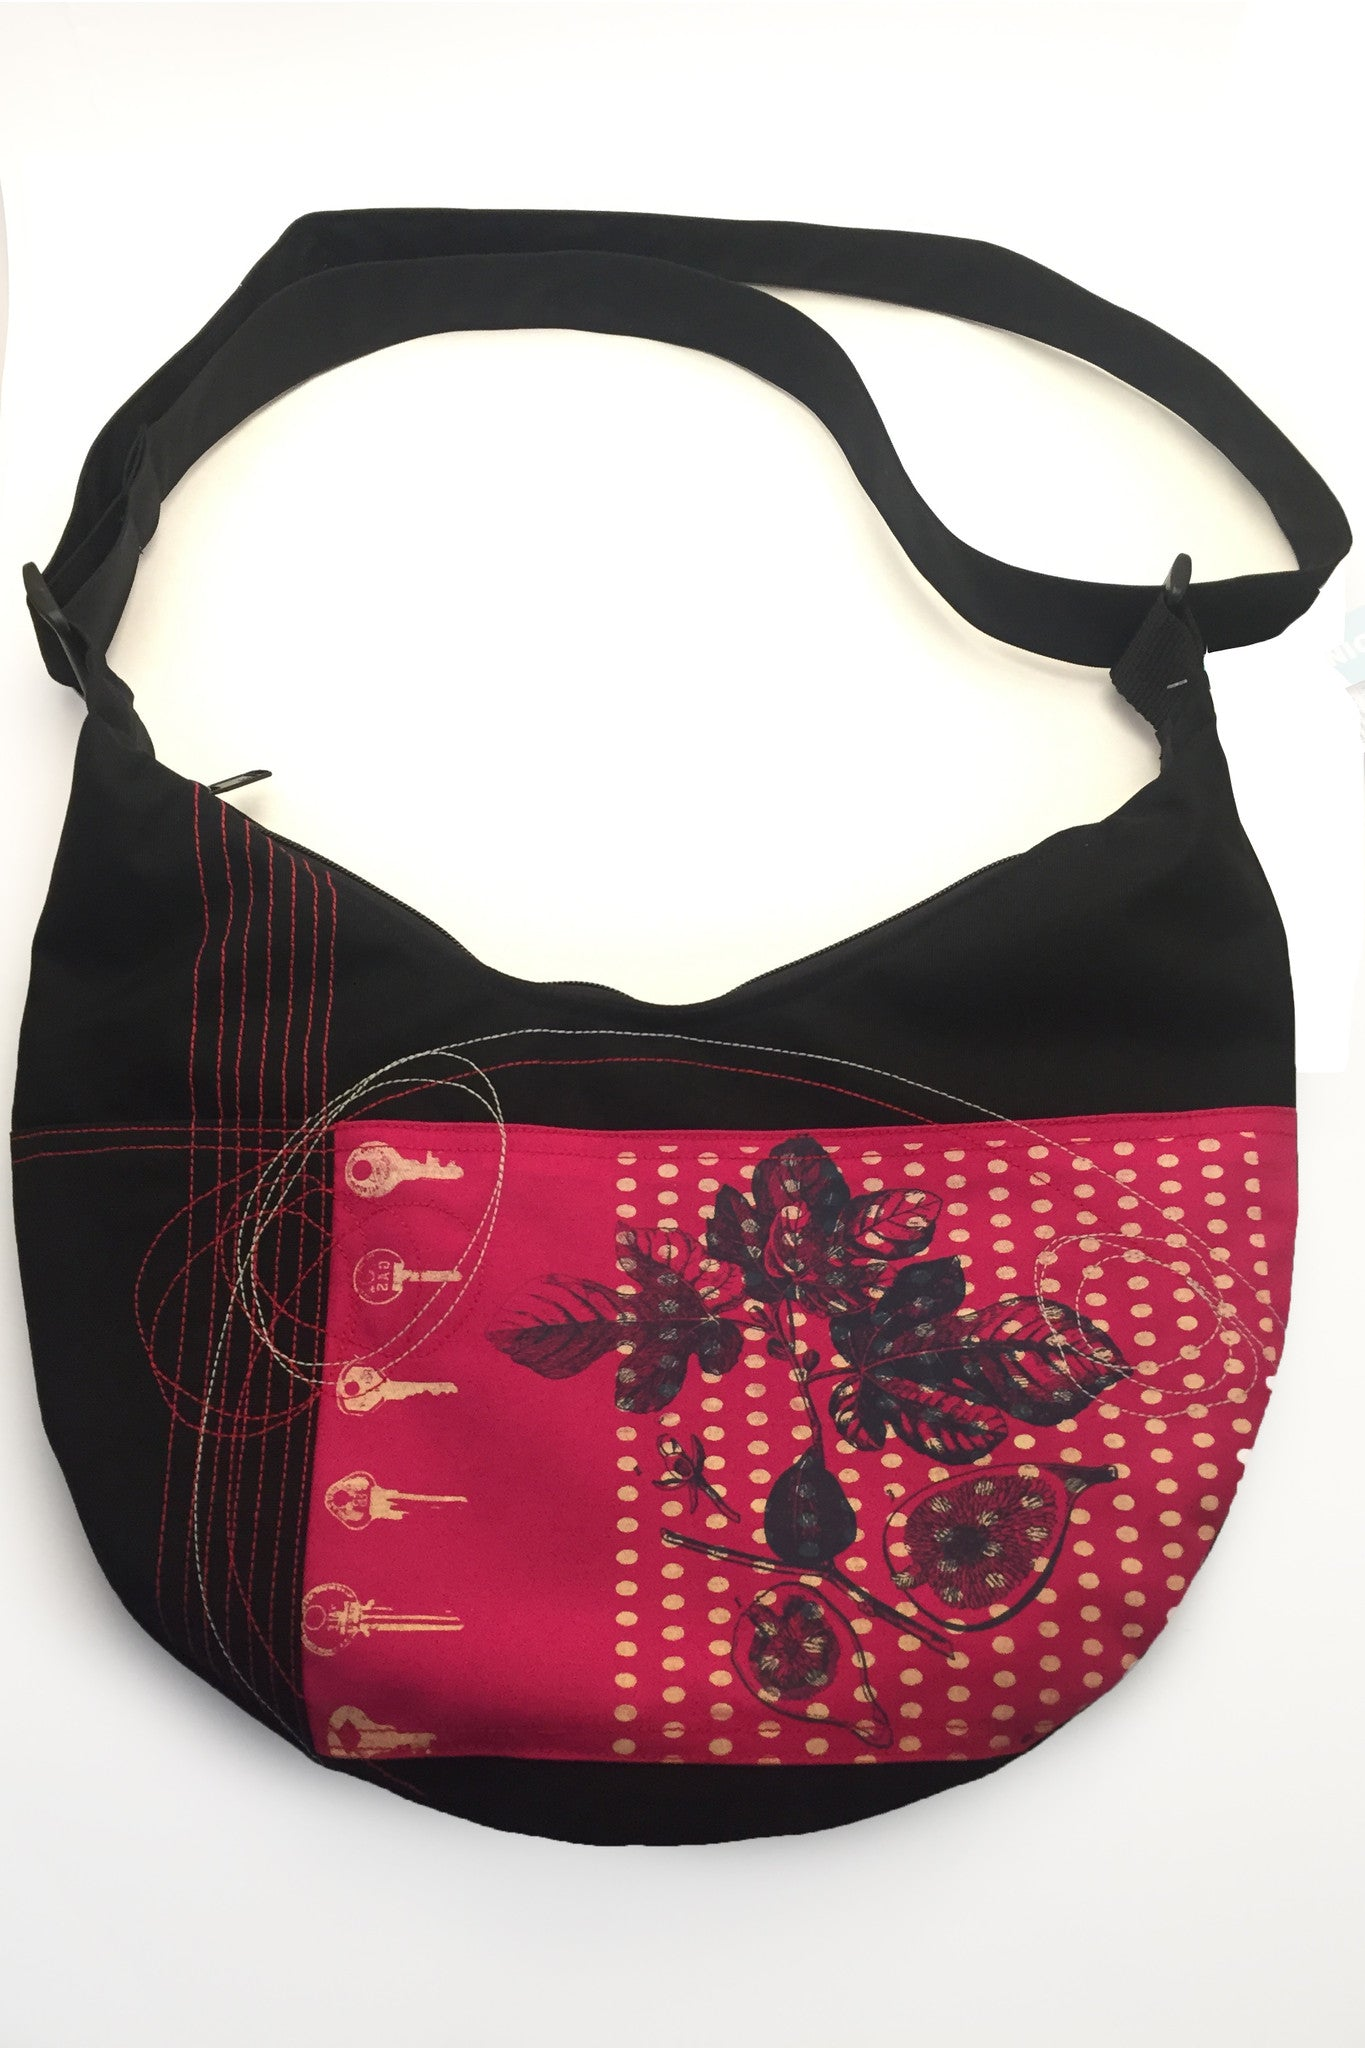 Waterproof one of a kind Cynthia Virgine Bag in Black and red. Handmade in Quebec